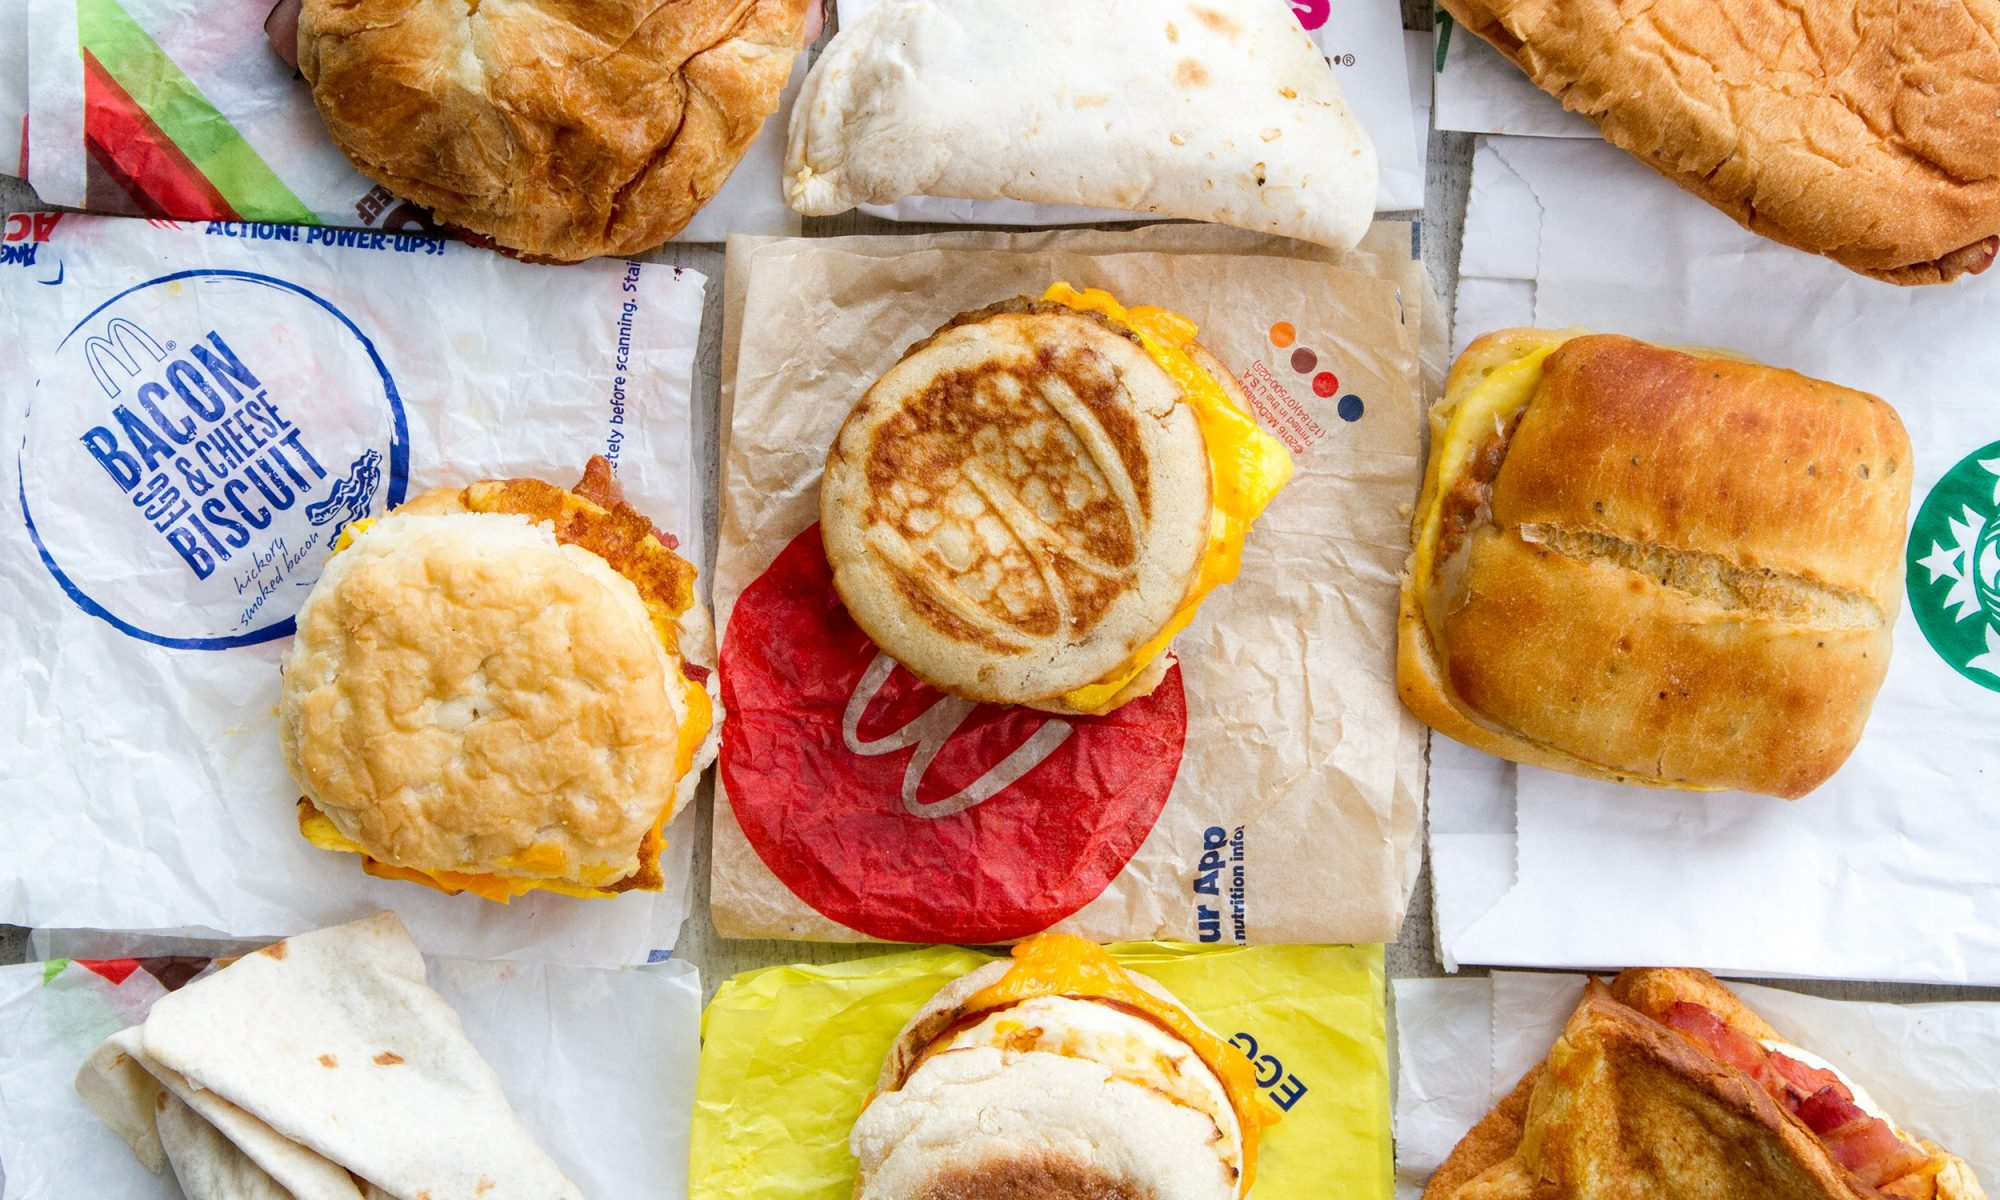 Breakfast at McDonalds is what everyone likes 98